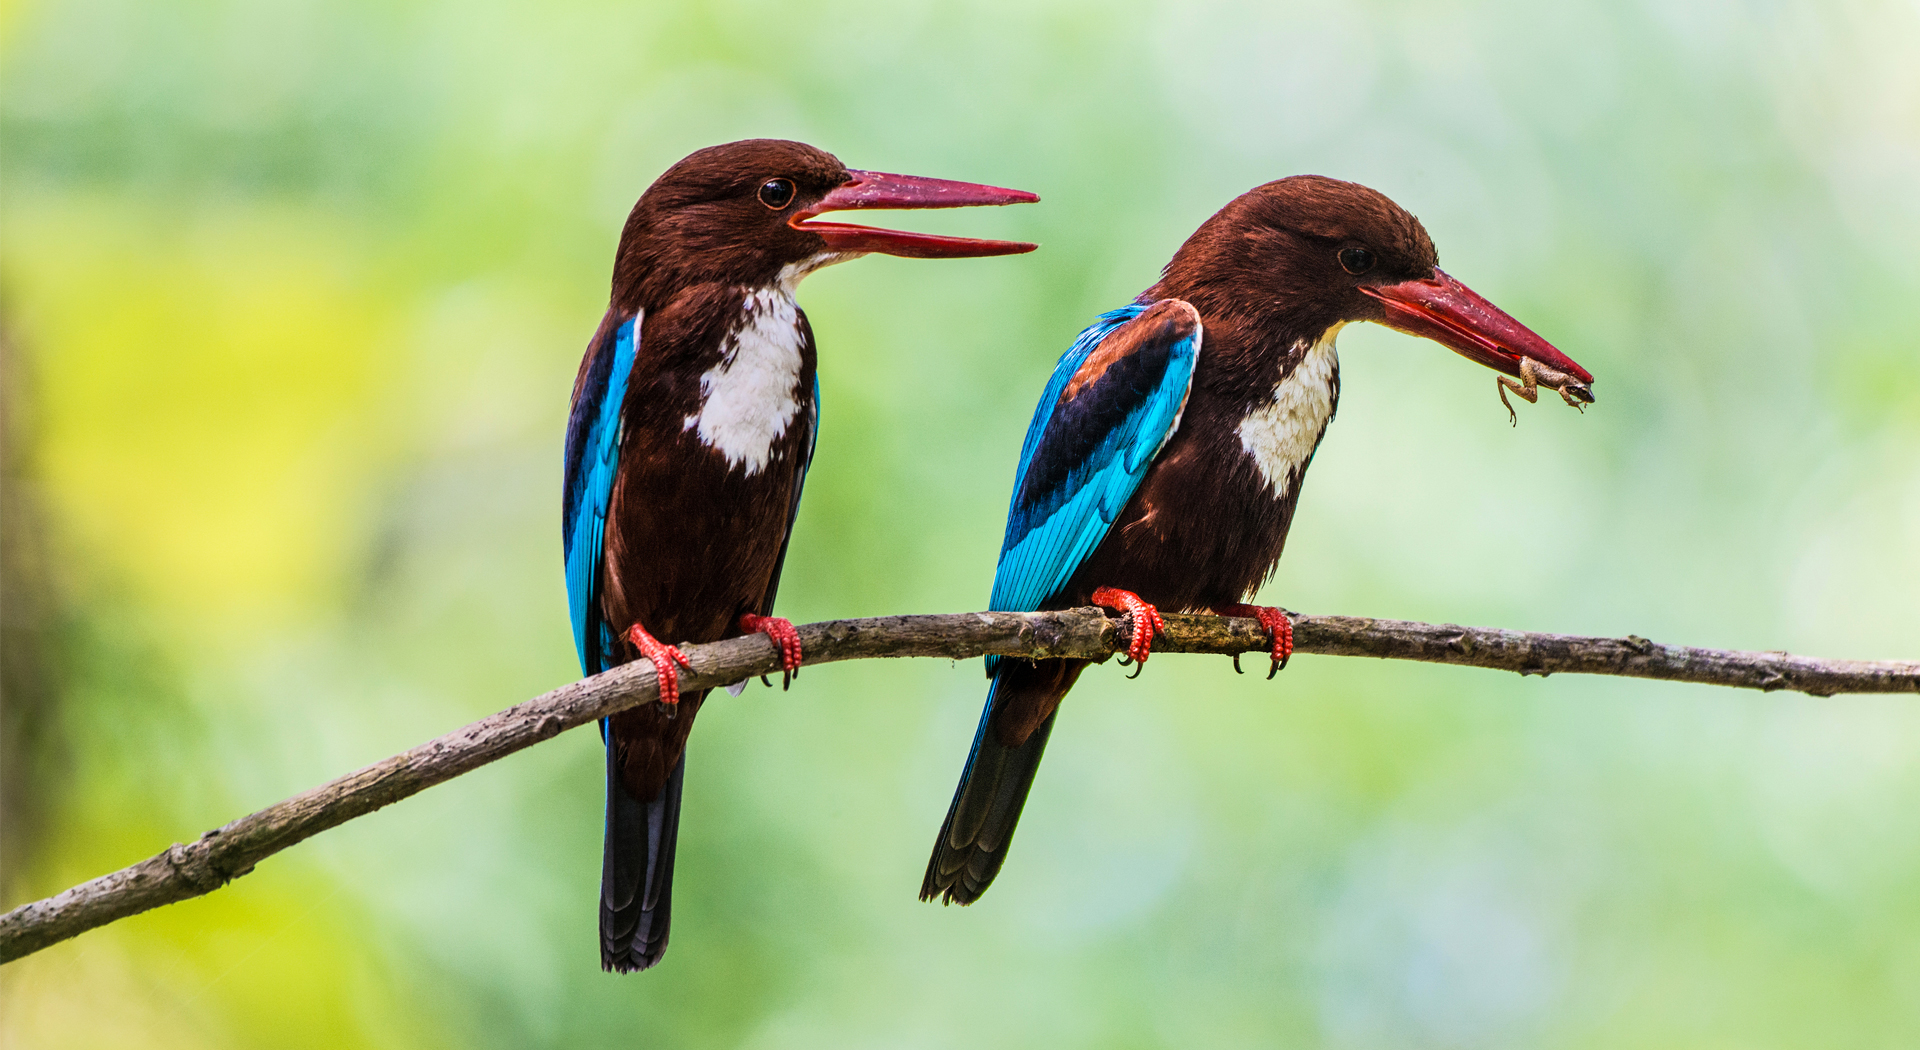 white-throated kingfisher, Halcyon smyrnensis, white-breasted kingfisher, Smyrna kingfisher, tree kingfisher, Birds, Birds found in India, Birds of Kerala, Birds in Kerala,